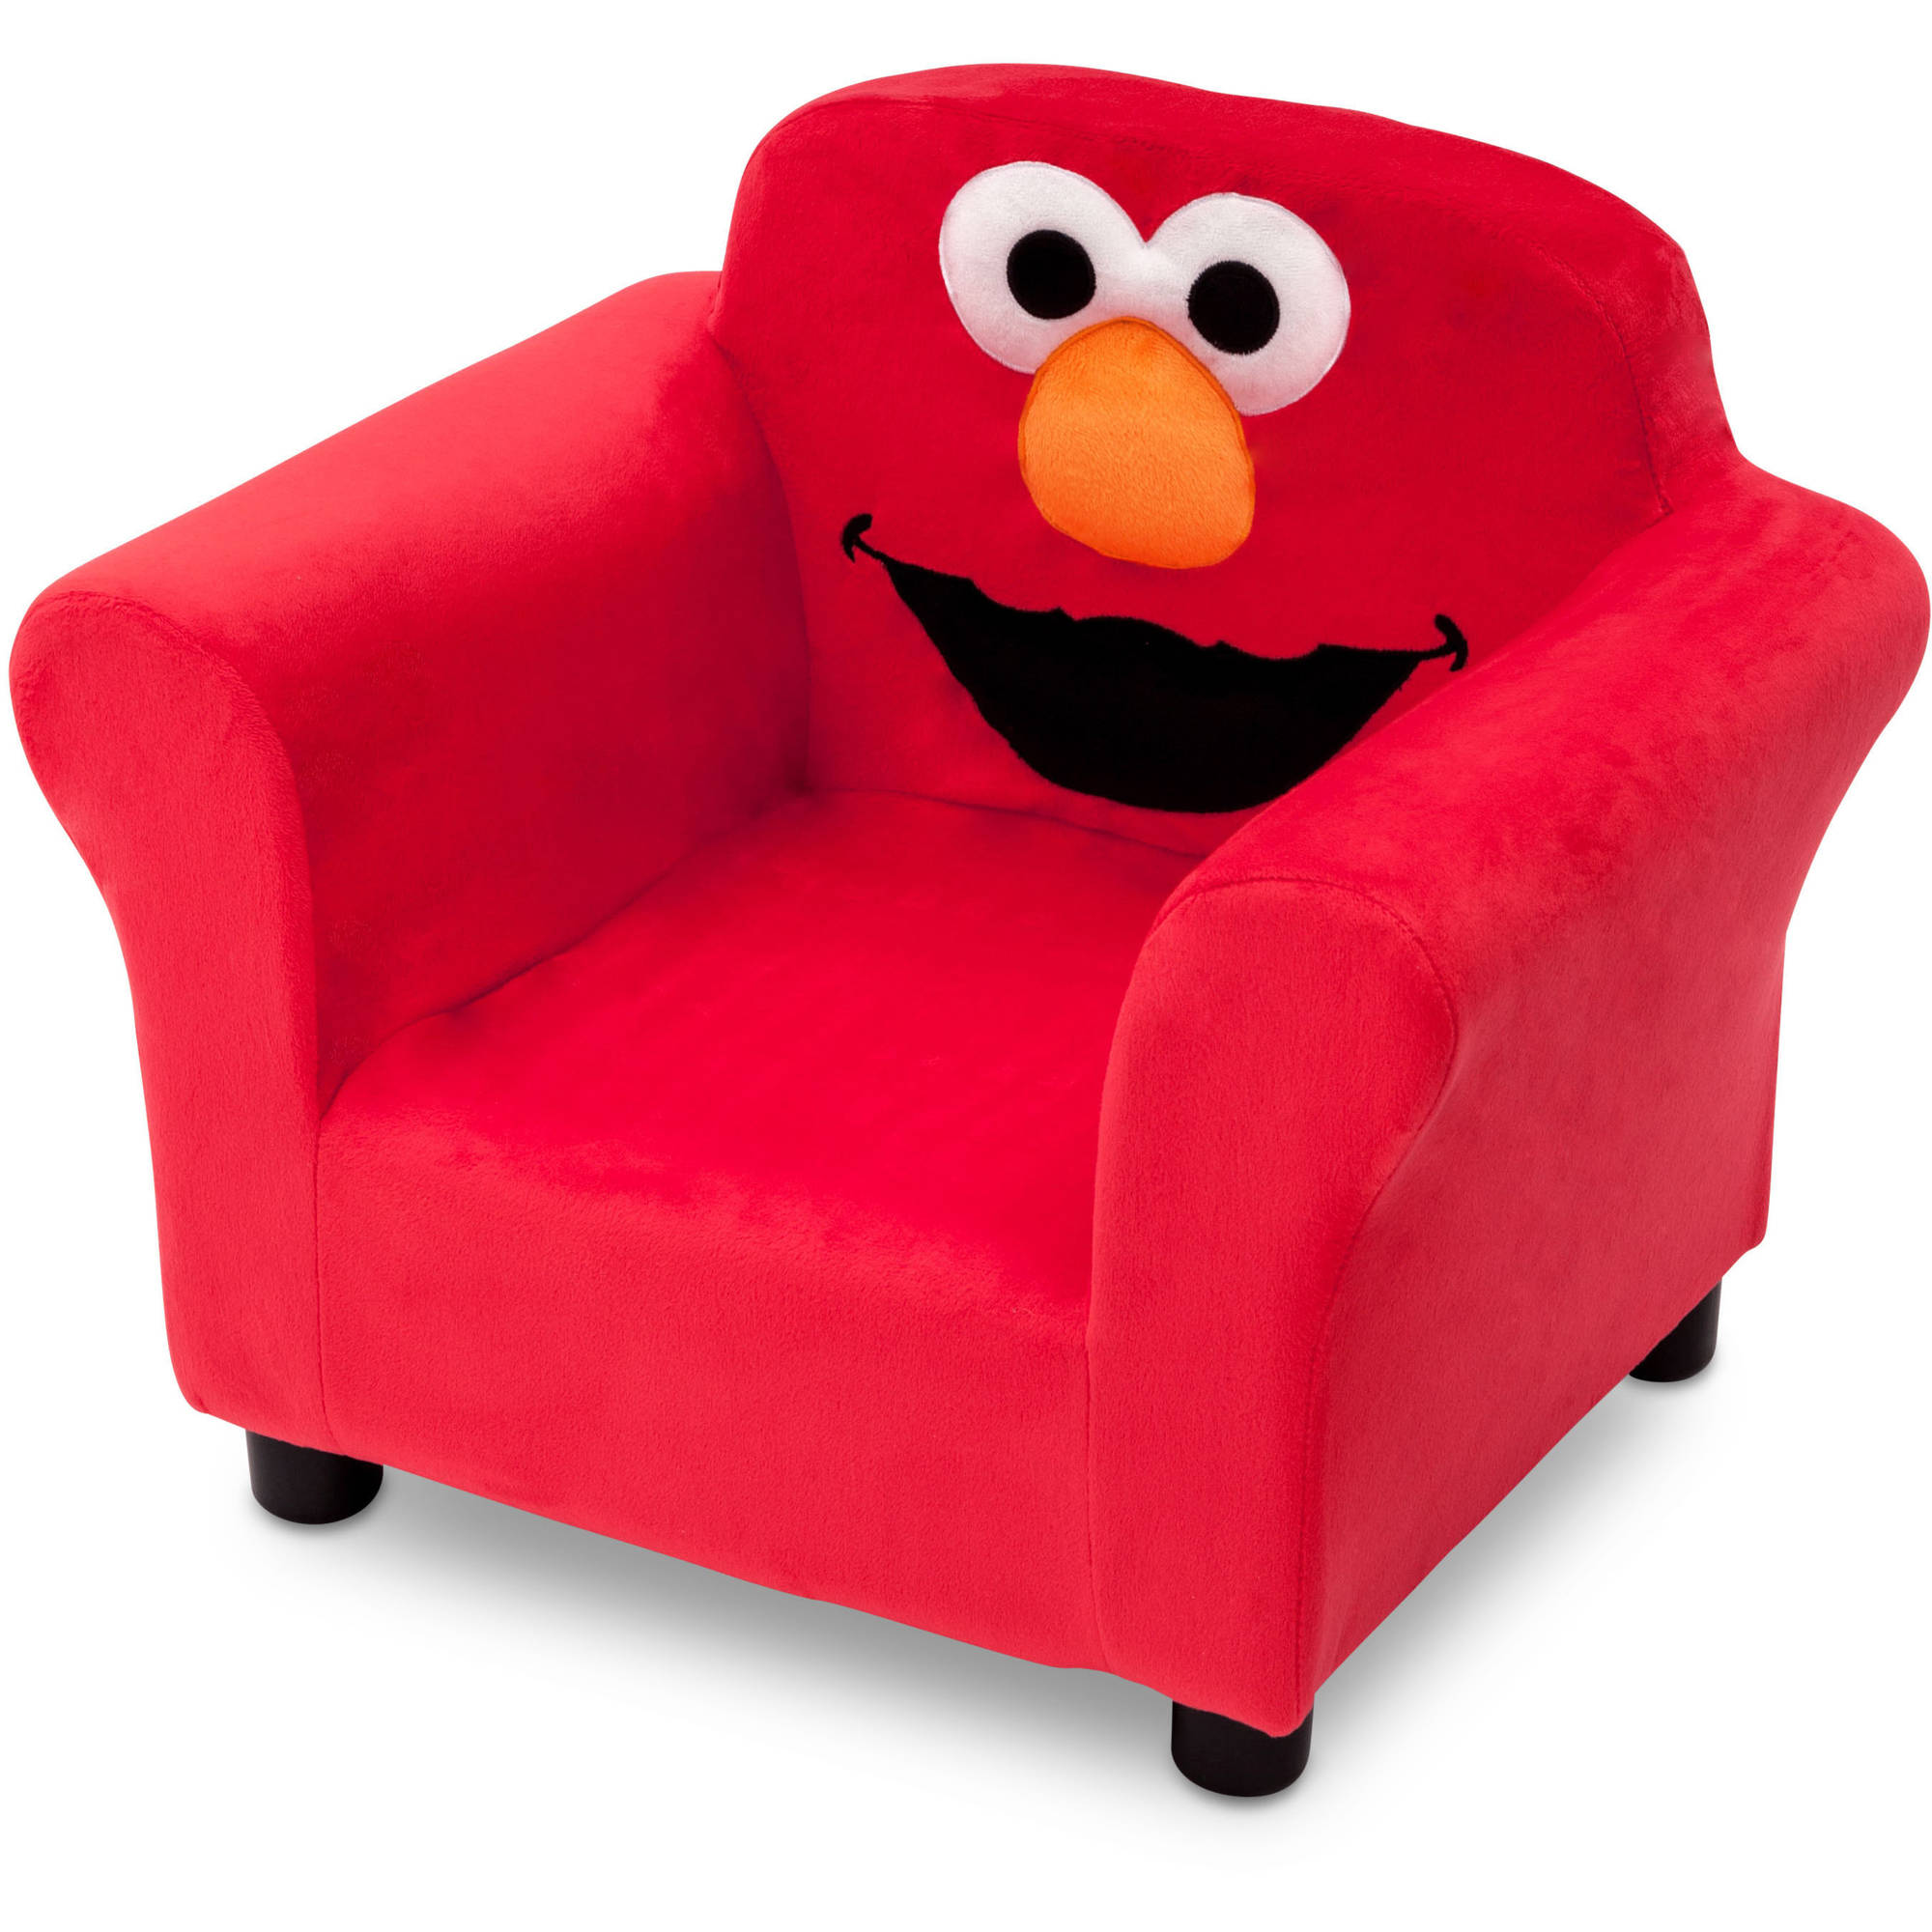 plush padded moon saucer chair in red covers and more houston new delta children 39s sesame street upholstered